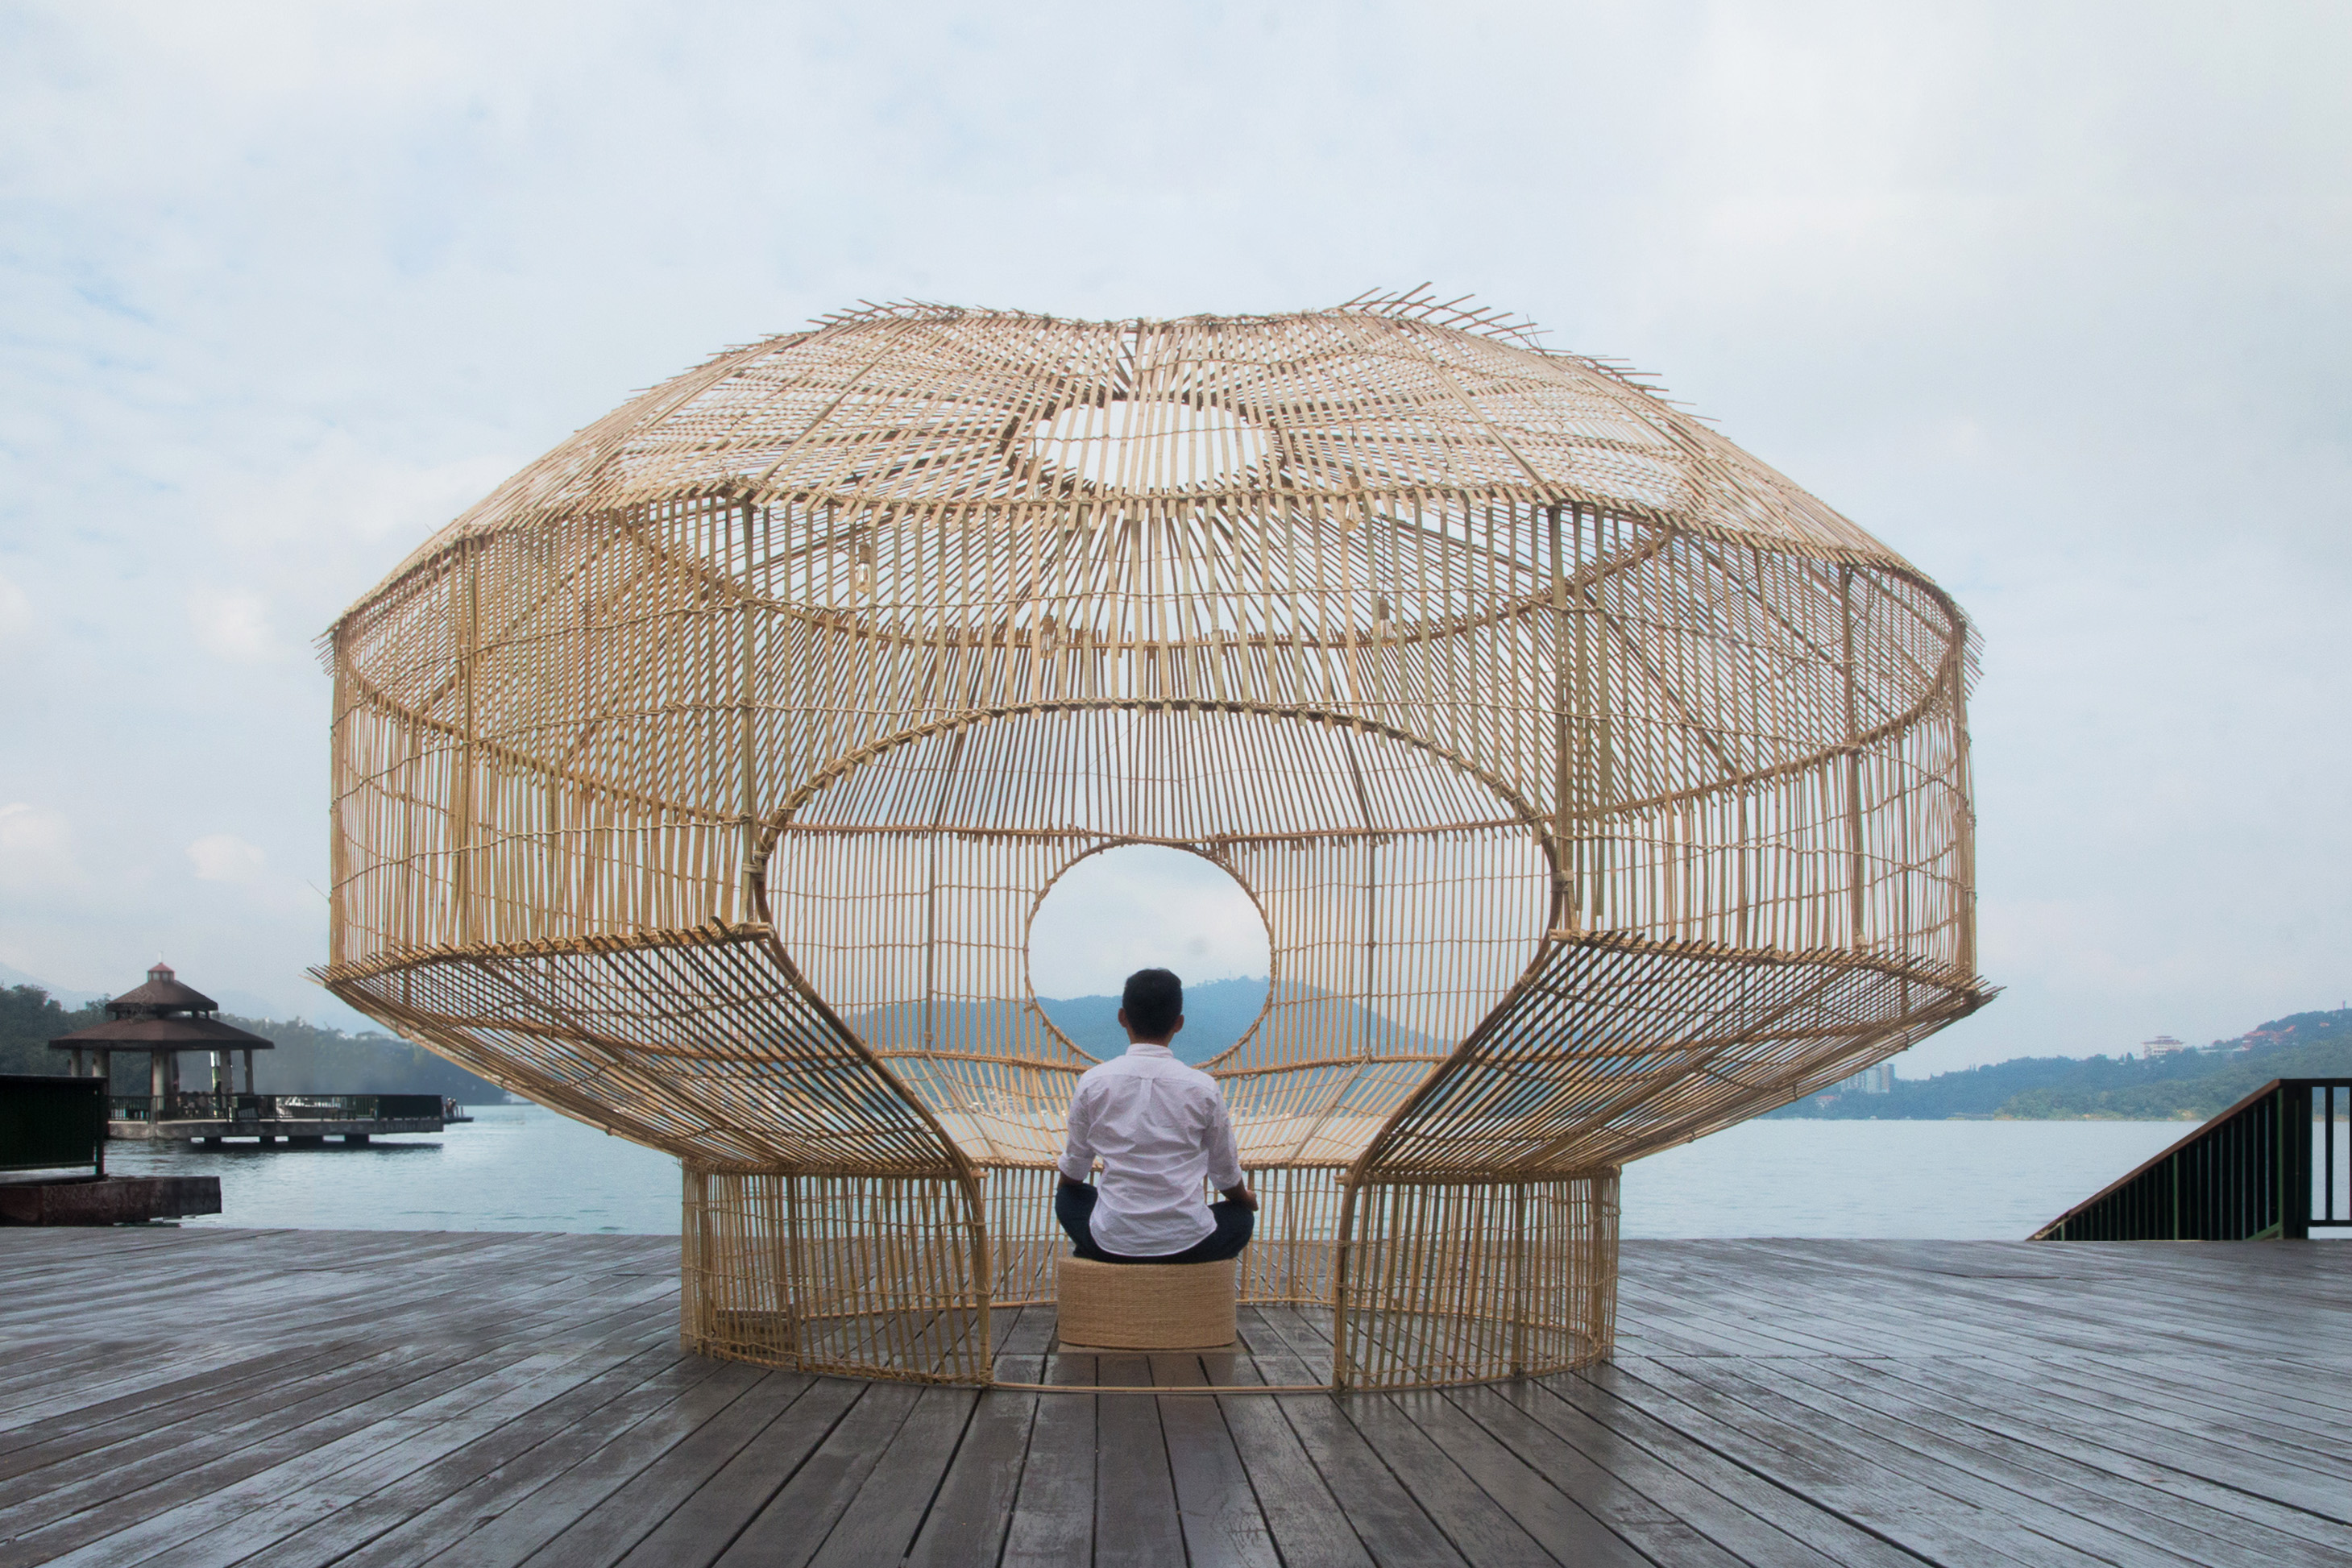 The completed Fish Trap House at Sun Moon Lake in Taiwan.